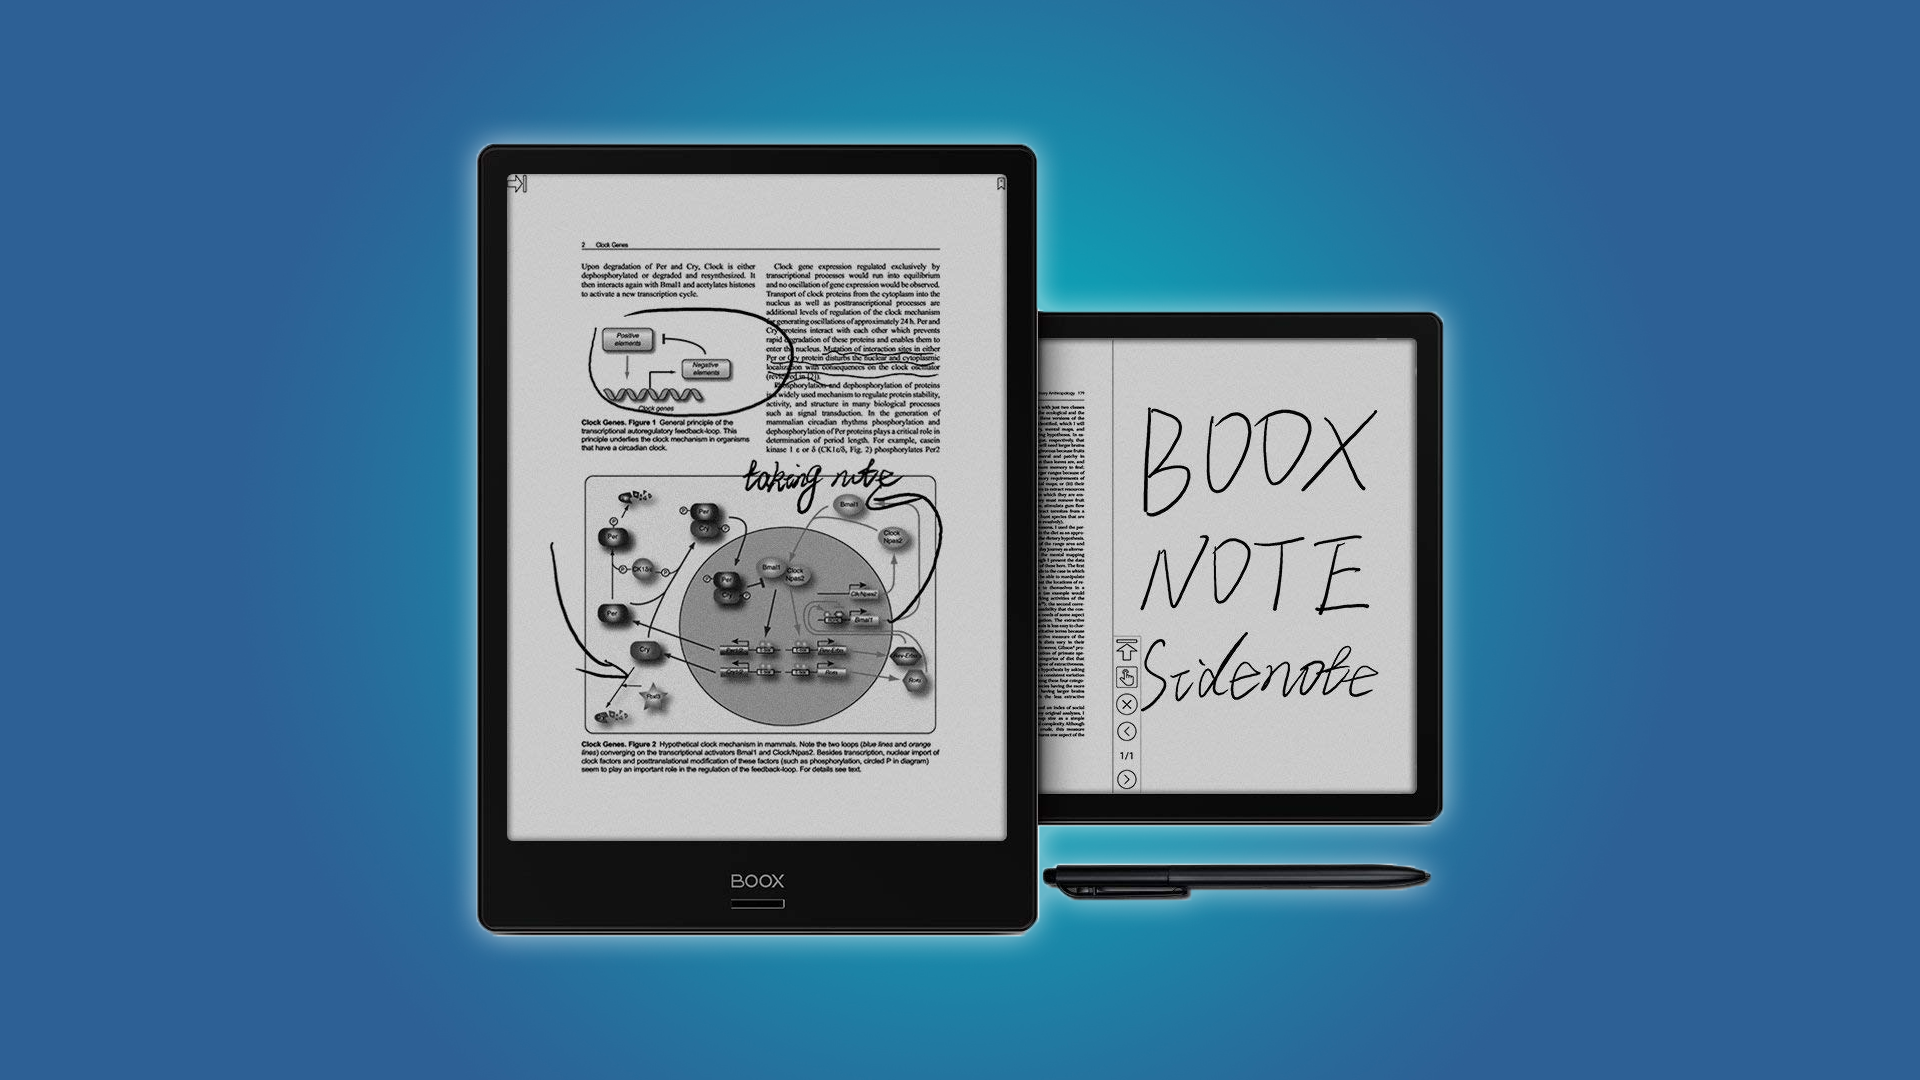 The Boox Note